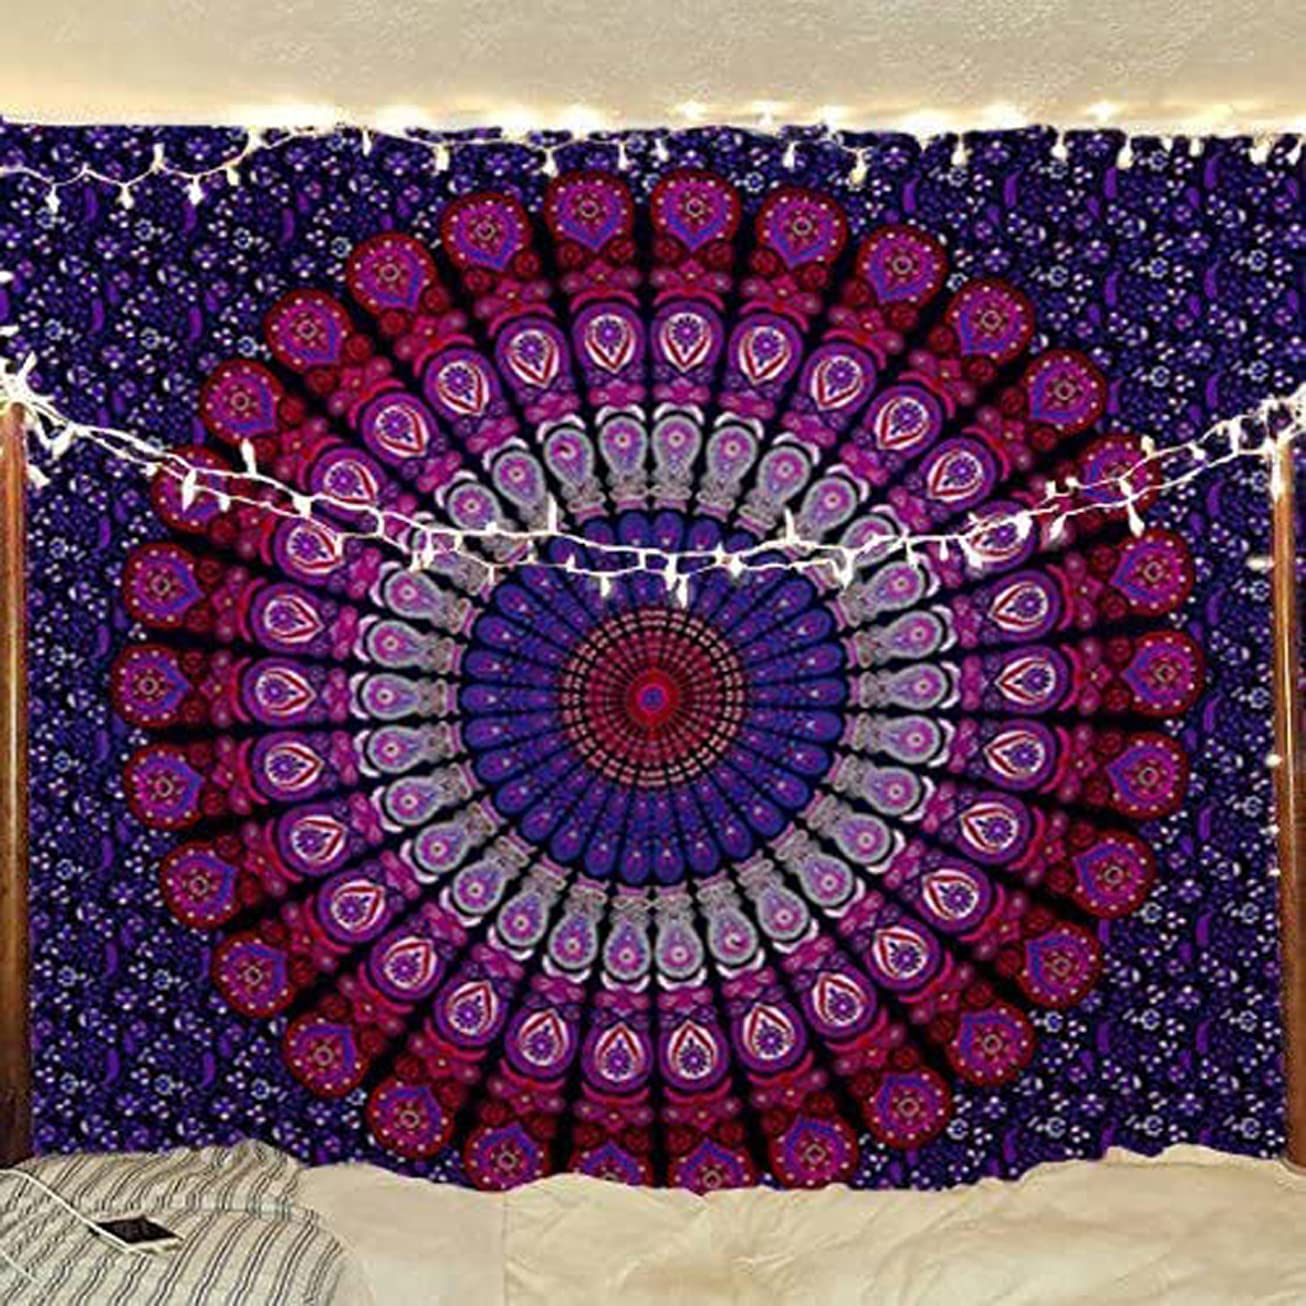 Raajsee Indian Cotton Purple Tapestry Mandala Challenge the lowest price Tap Hangings- Wall Very popular